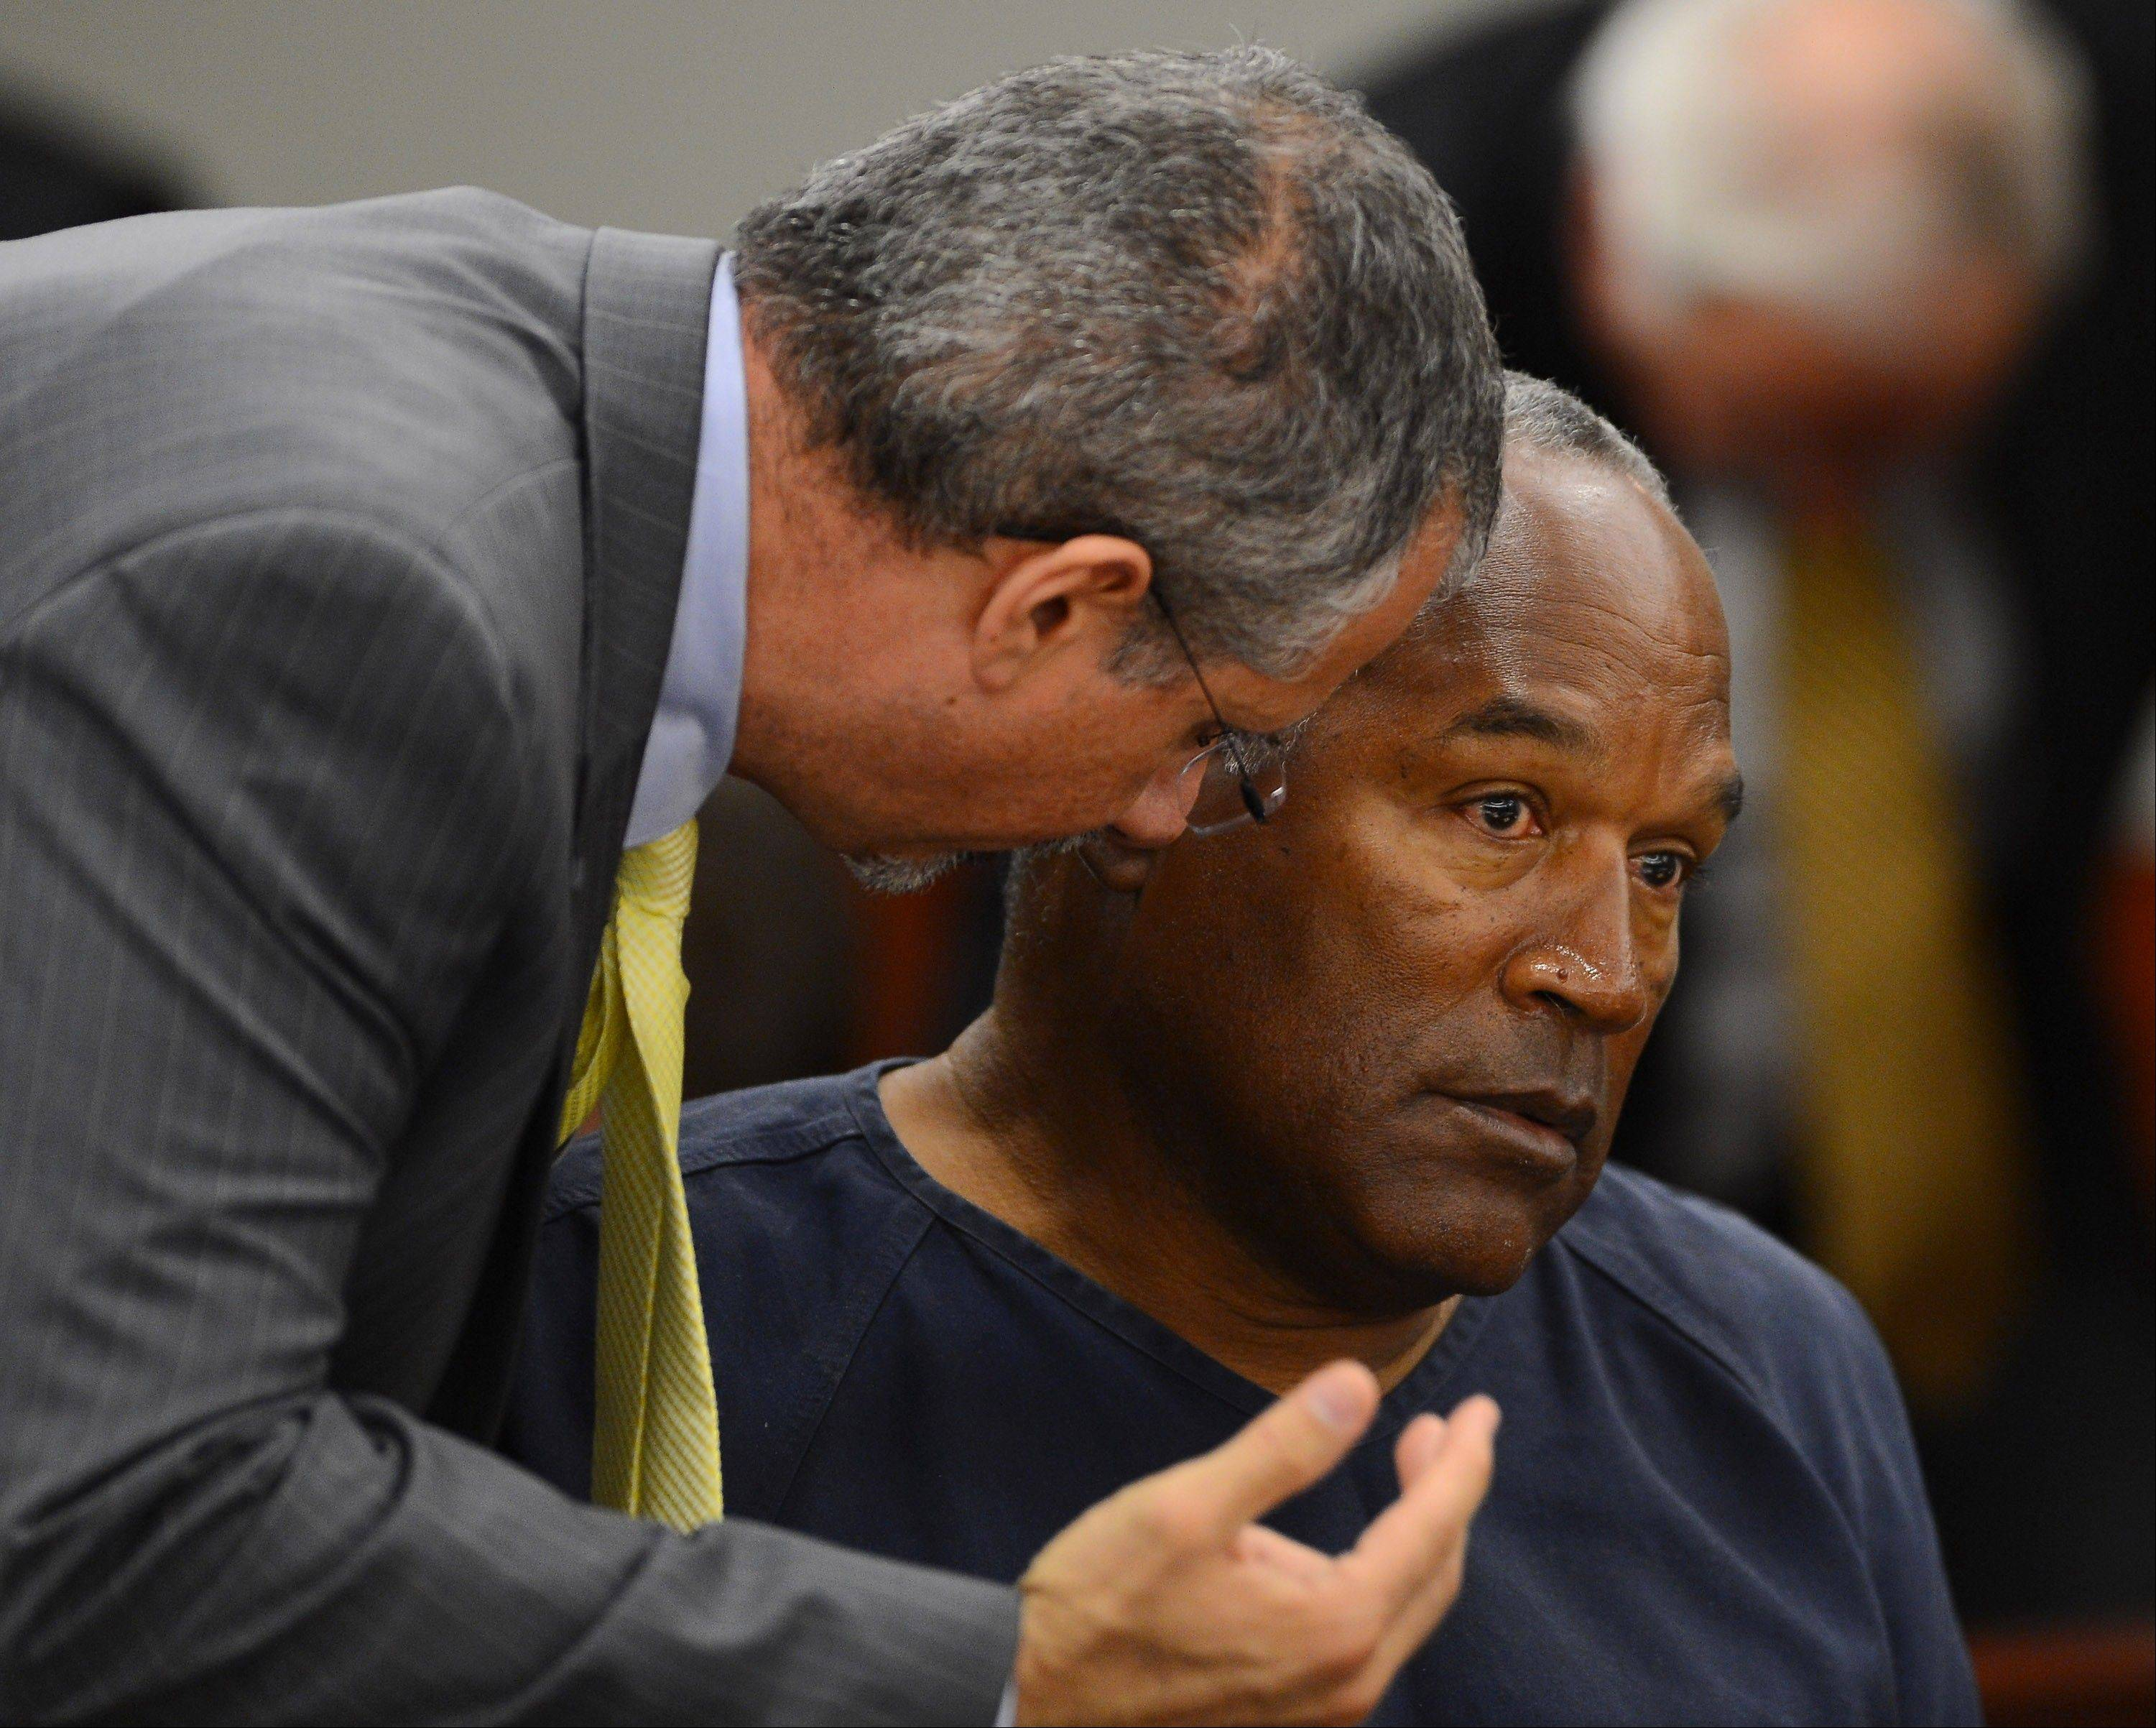 Defense attorney Ozzie Fumo, left, confers with his client, O.J. Simpson during an evidentiary hearing for Simpson in Clark County District Court Tuesday in Las Vegas.